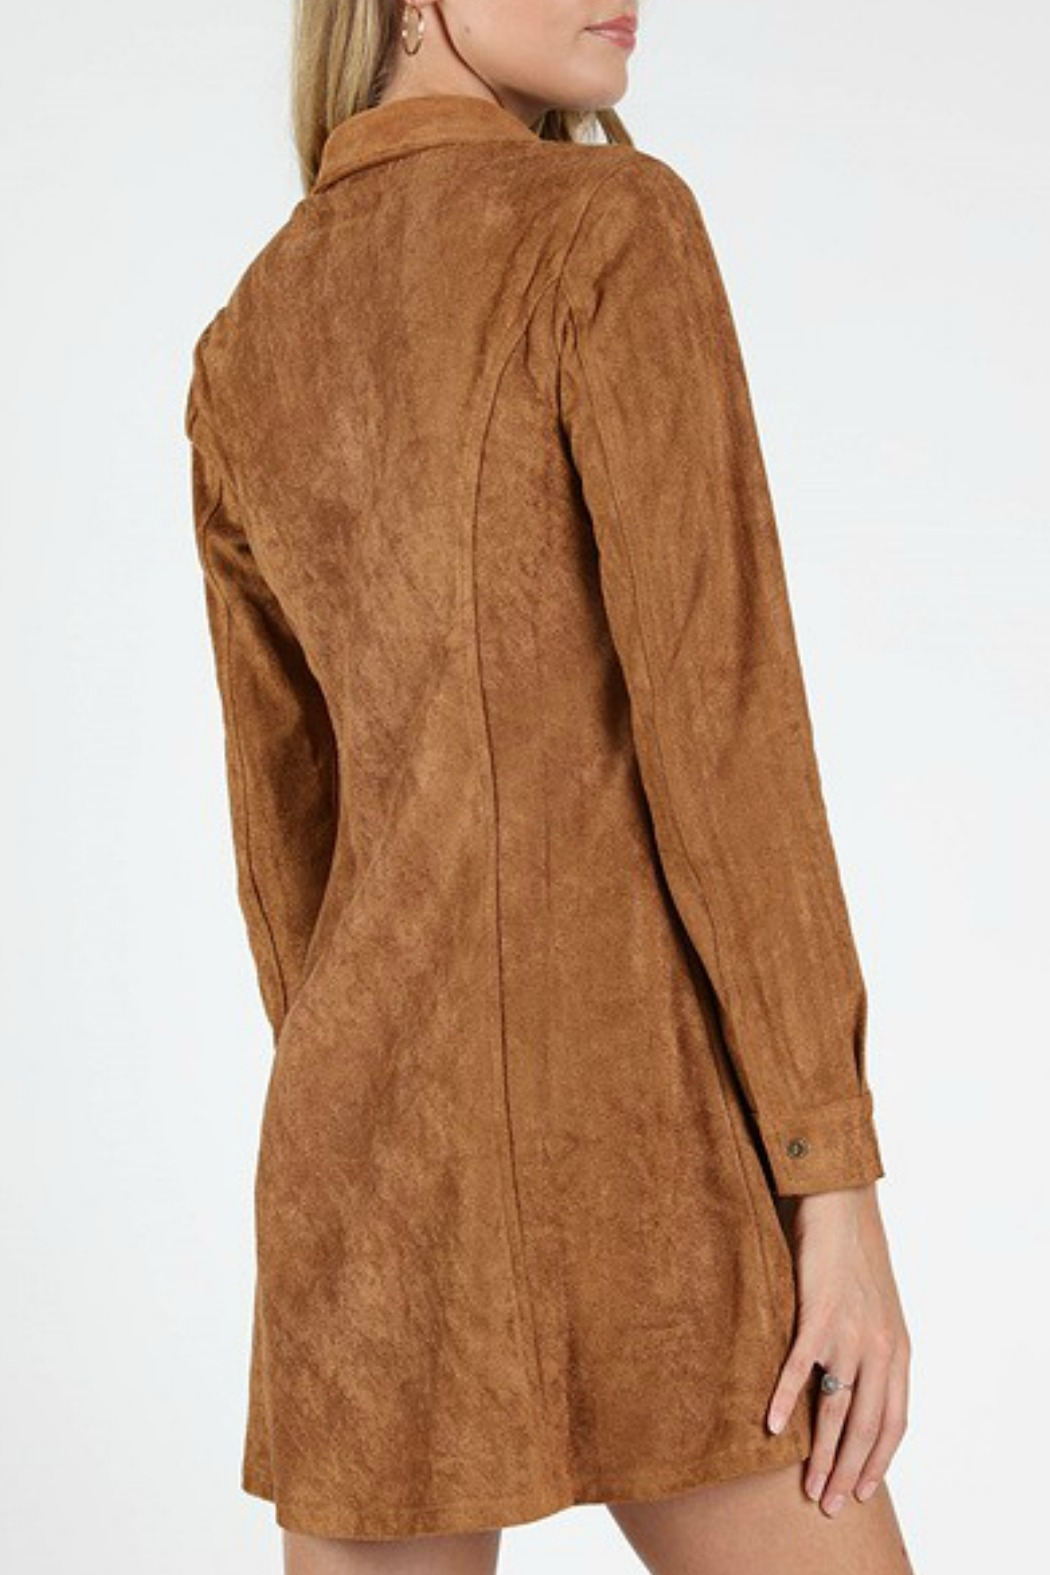 Wild Honey Suede Shirt Dress - Side Cropped Image